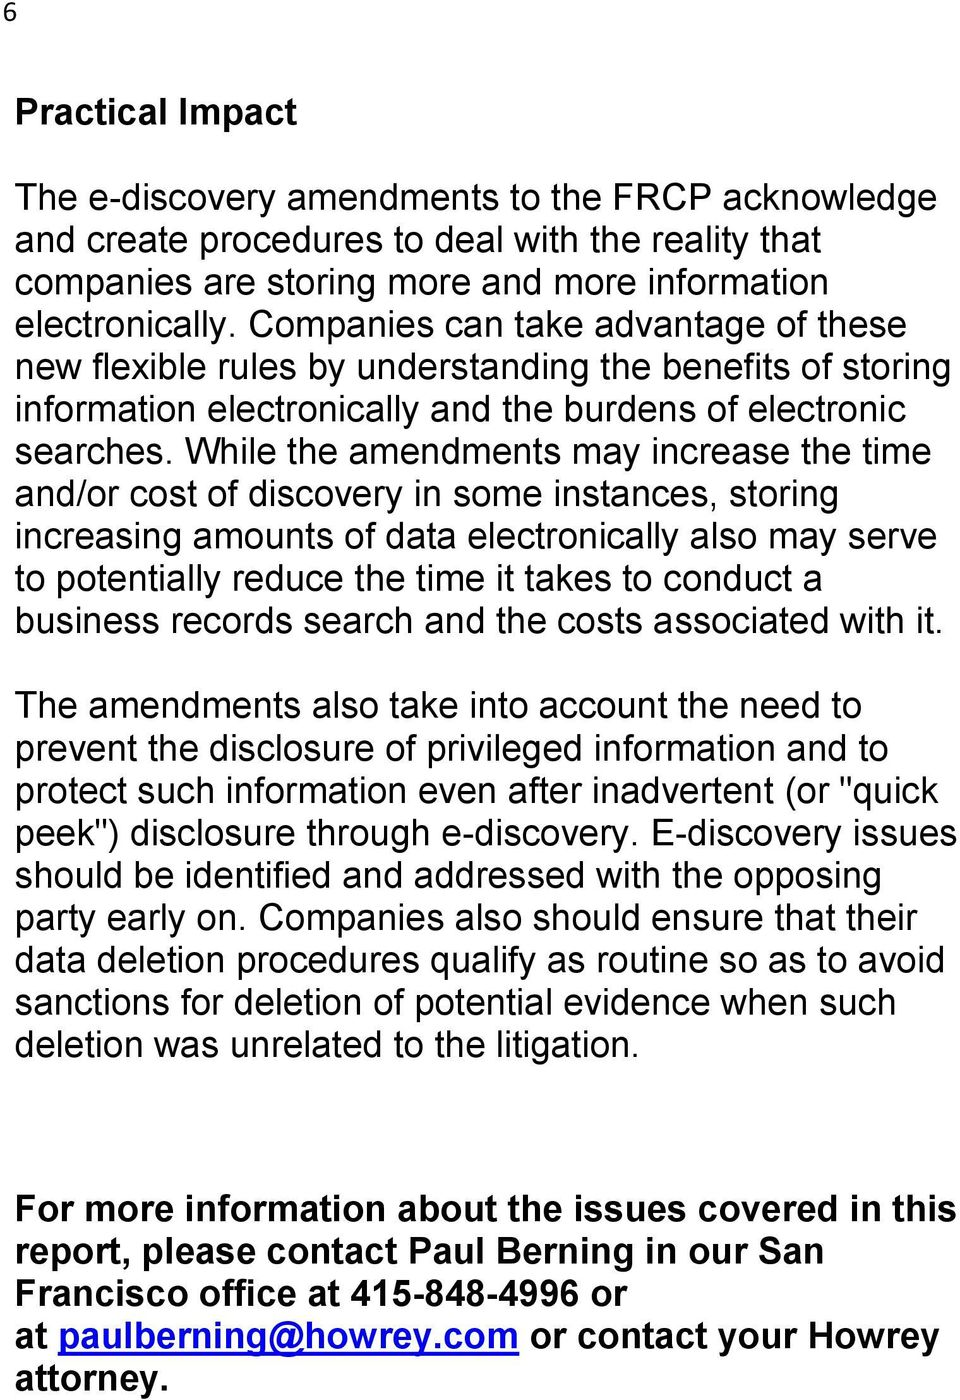 While the amendments may increase the time and/or cost of discovery in some instances, storing increasing amounts of data electronically also may serve to potentially reduce the time it takes to